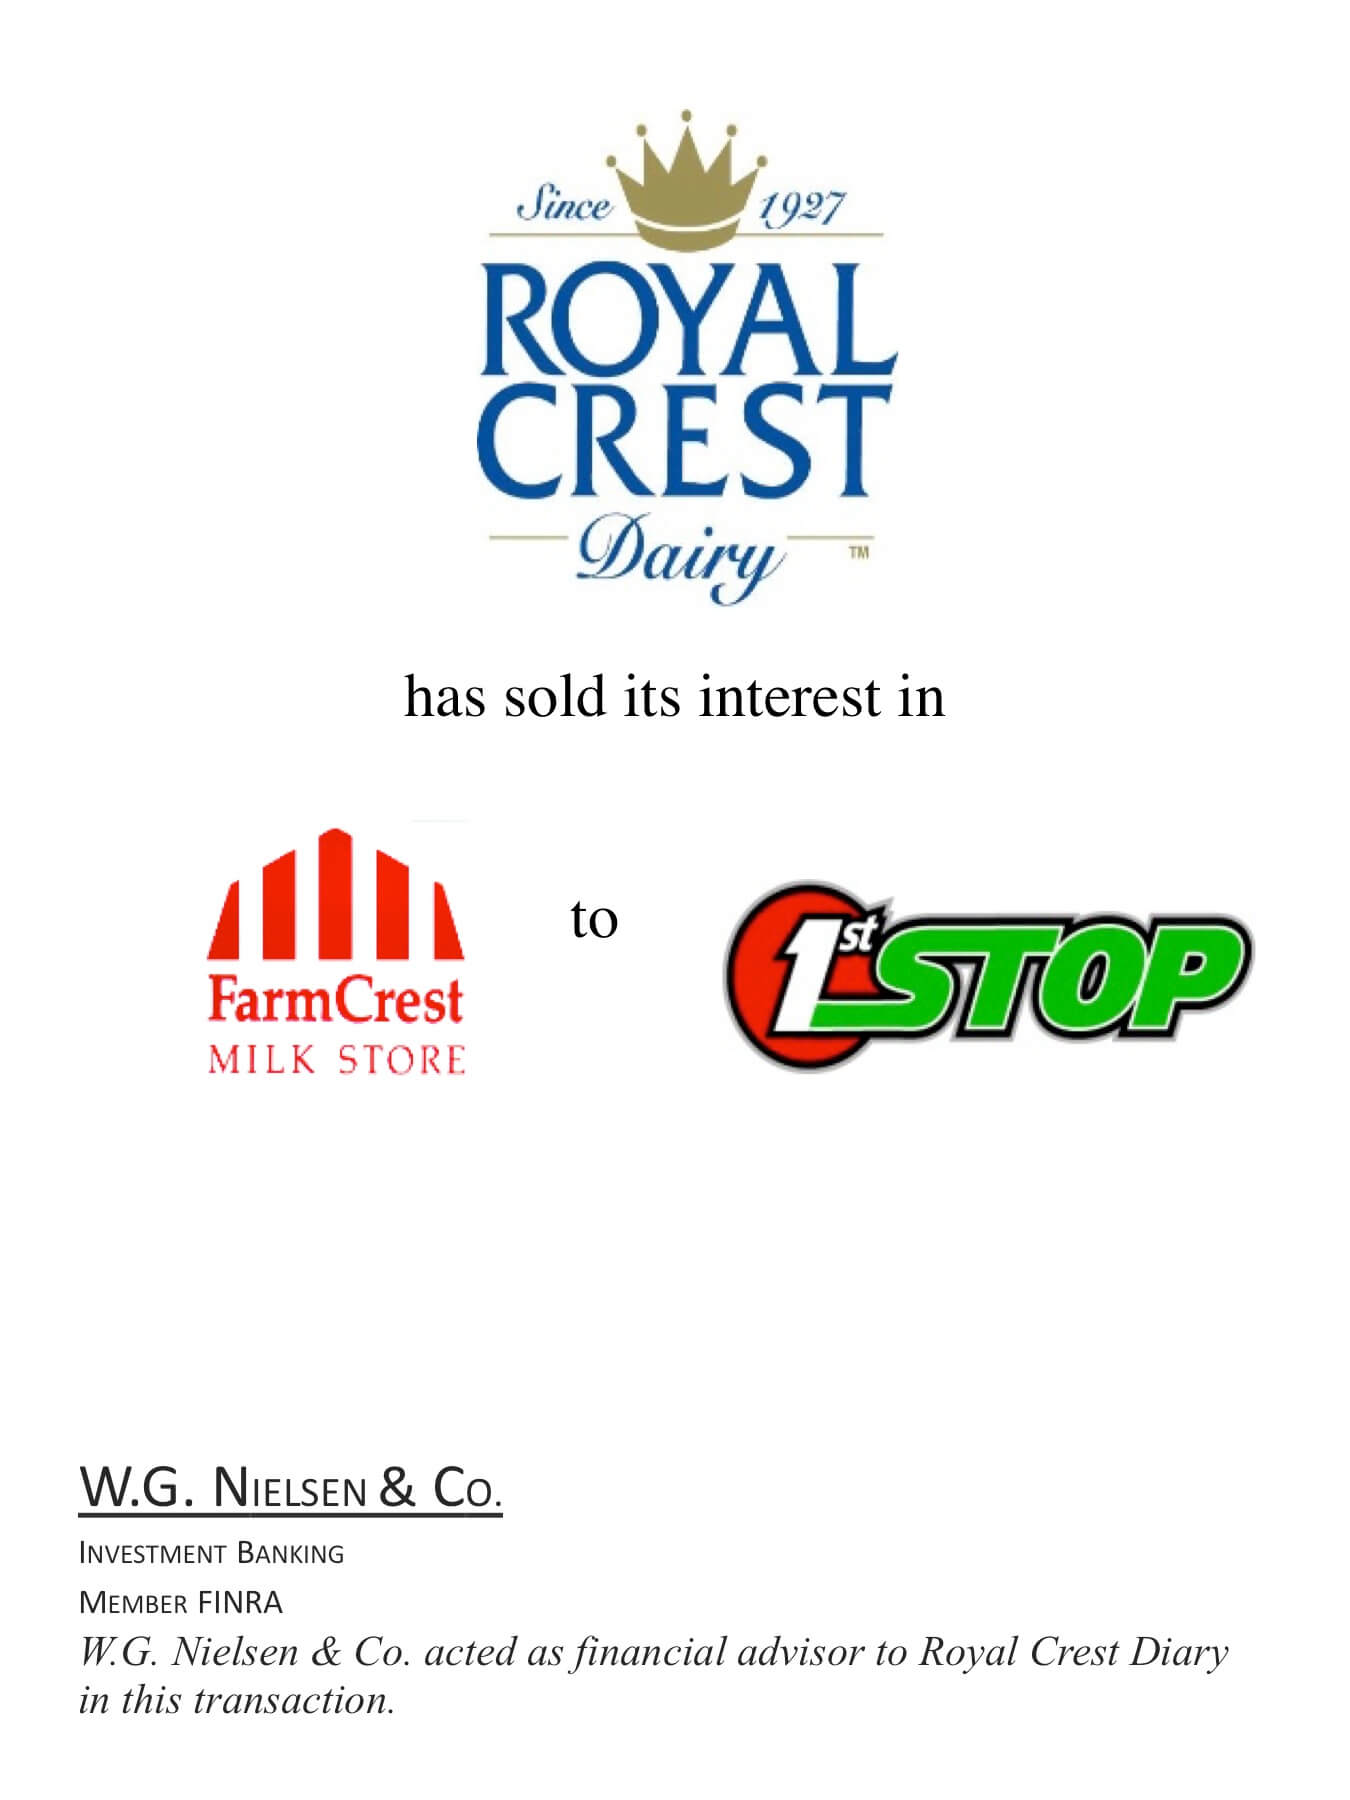 royal crest investment banking transaction